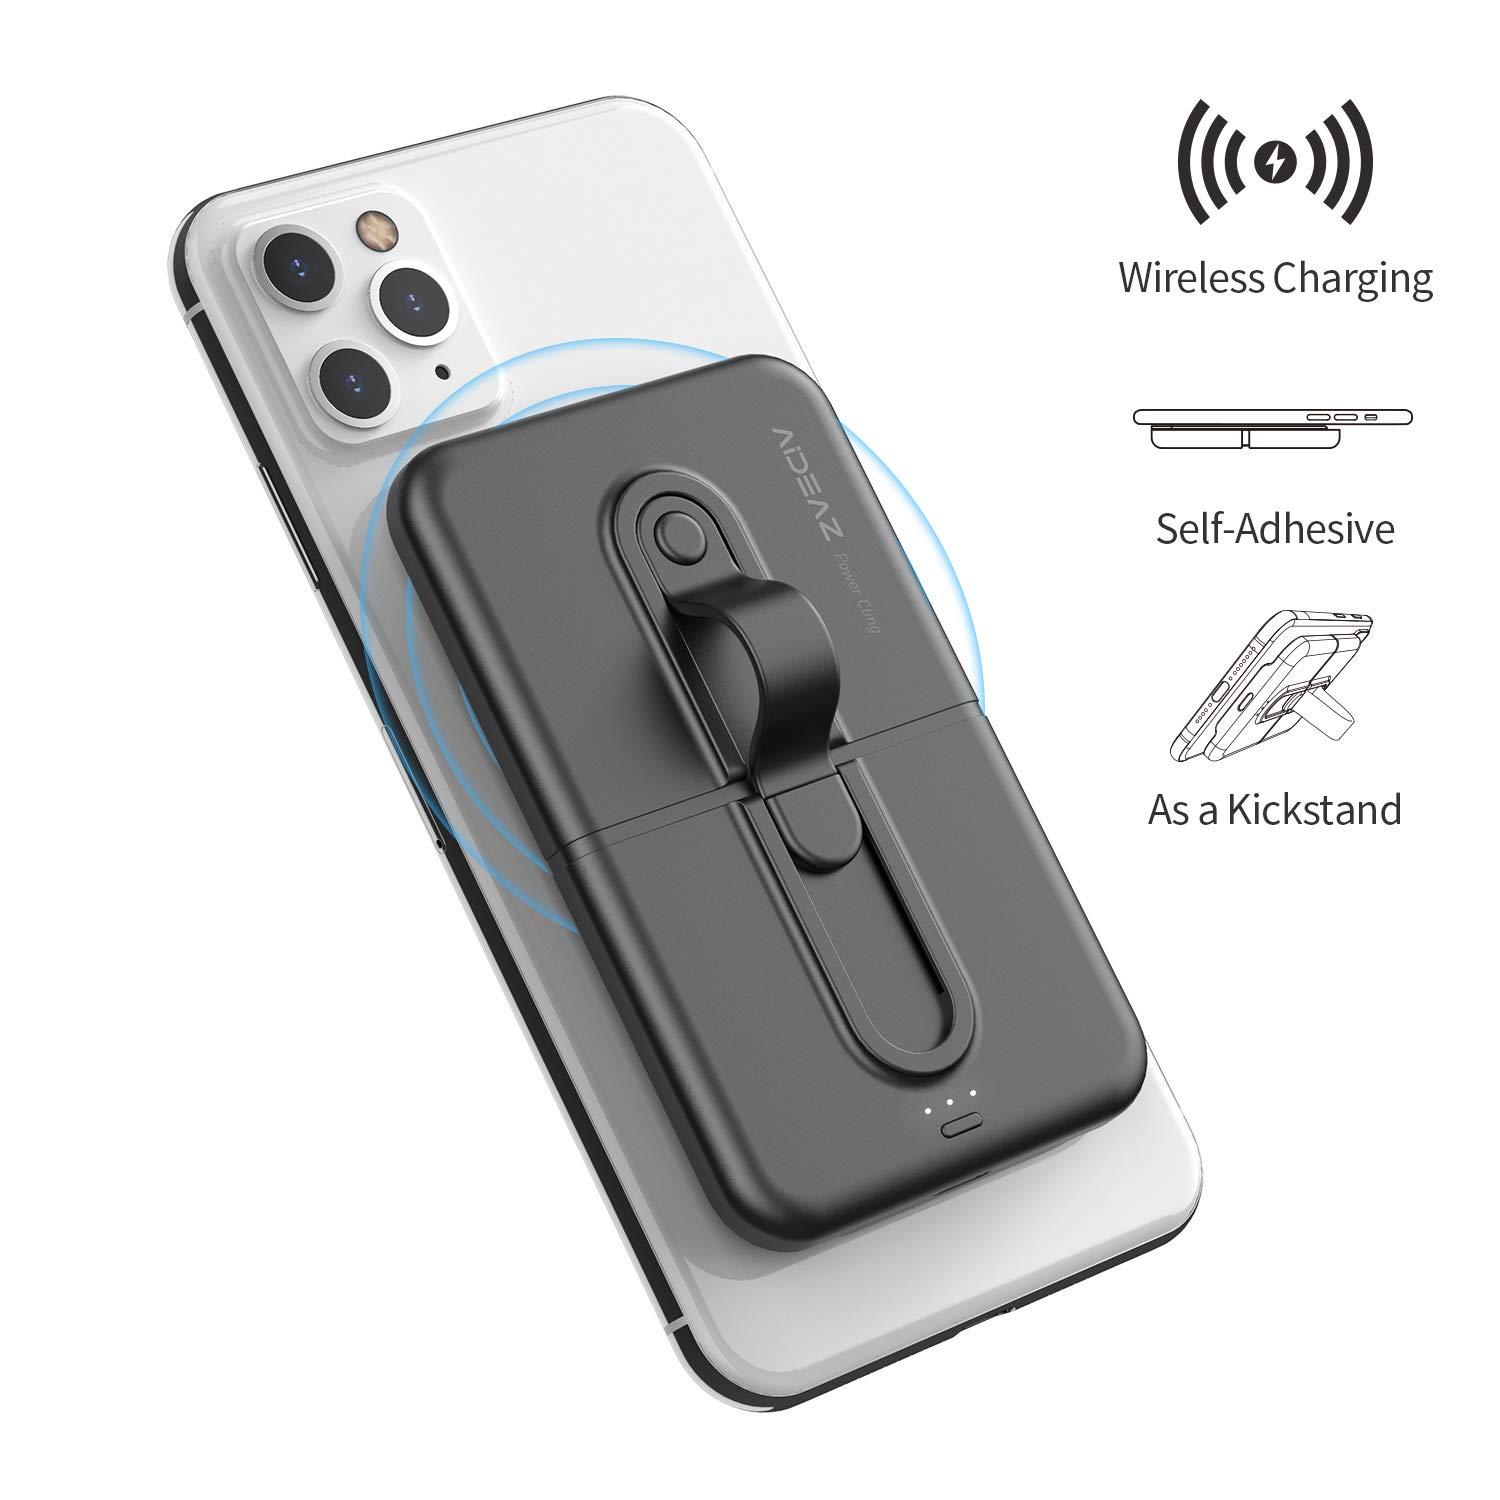 AIDEAZ Wireless Power Bank Mini Portable Charger 5000mAh, with Phone Finger Ring Holder Stand Qi Wireless Charger